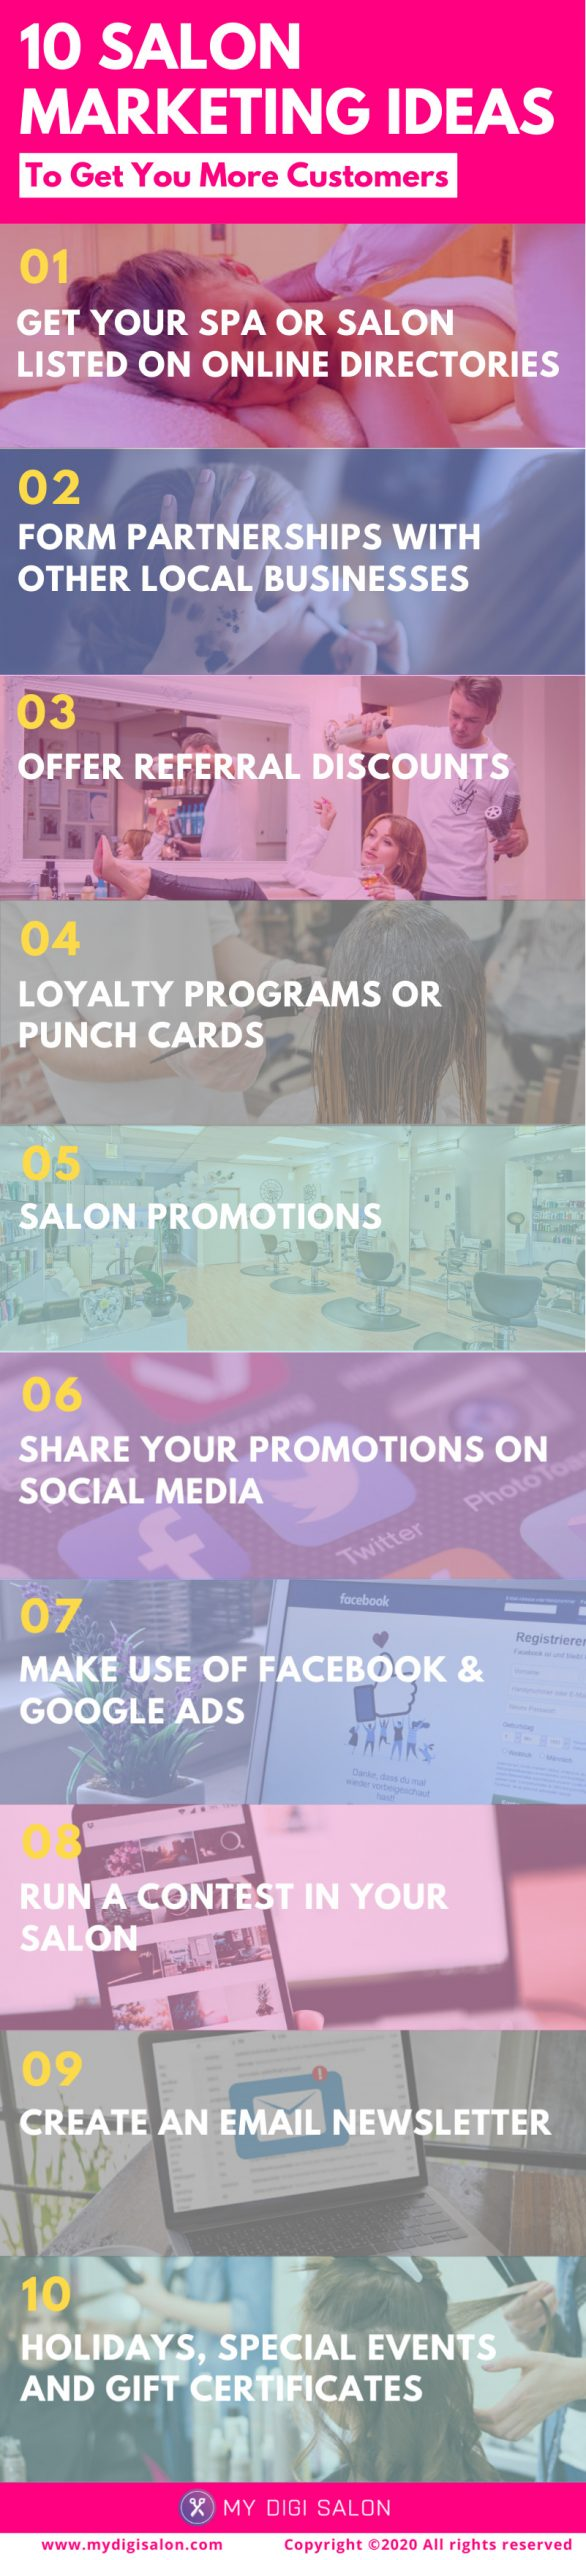 17+ Effective Salon Marketing Ideas (To Get More Customers)